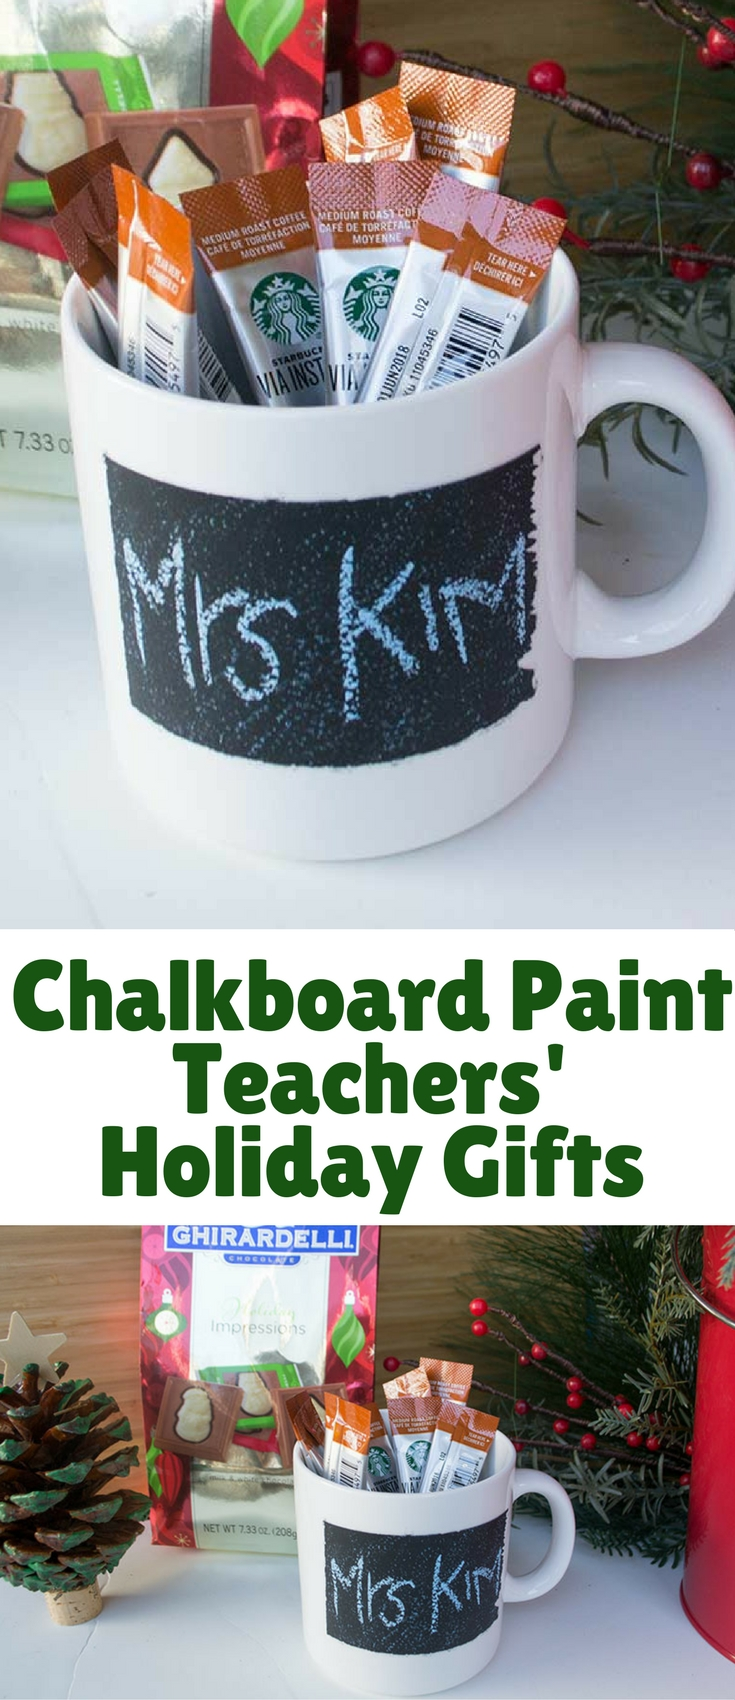 Chalkboard Paint Teachers' holiday gifts to give a one of a kind gift that is personalized! Using chalkboard paint made for glass, it couldn't be easier.